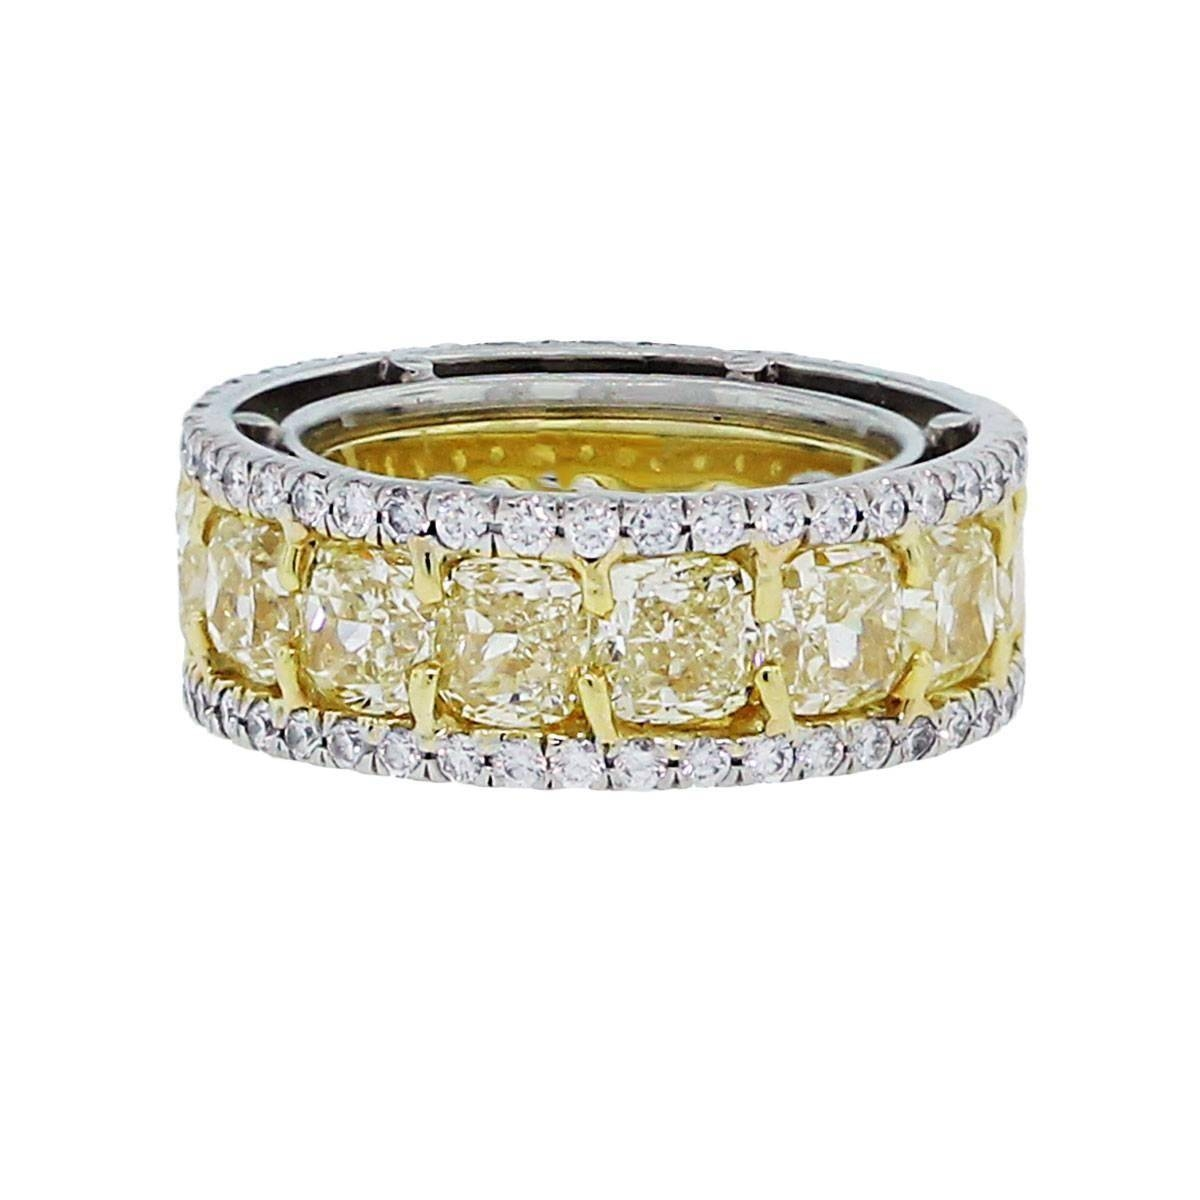 Fancy Yellow Diamond Gold Platinum Eternity Band At 1Stdibs Intended For Wedding Bands With Yellow Diamonds (View 7 of 15)